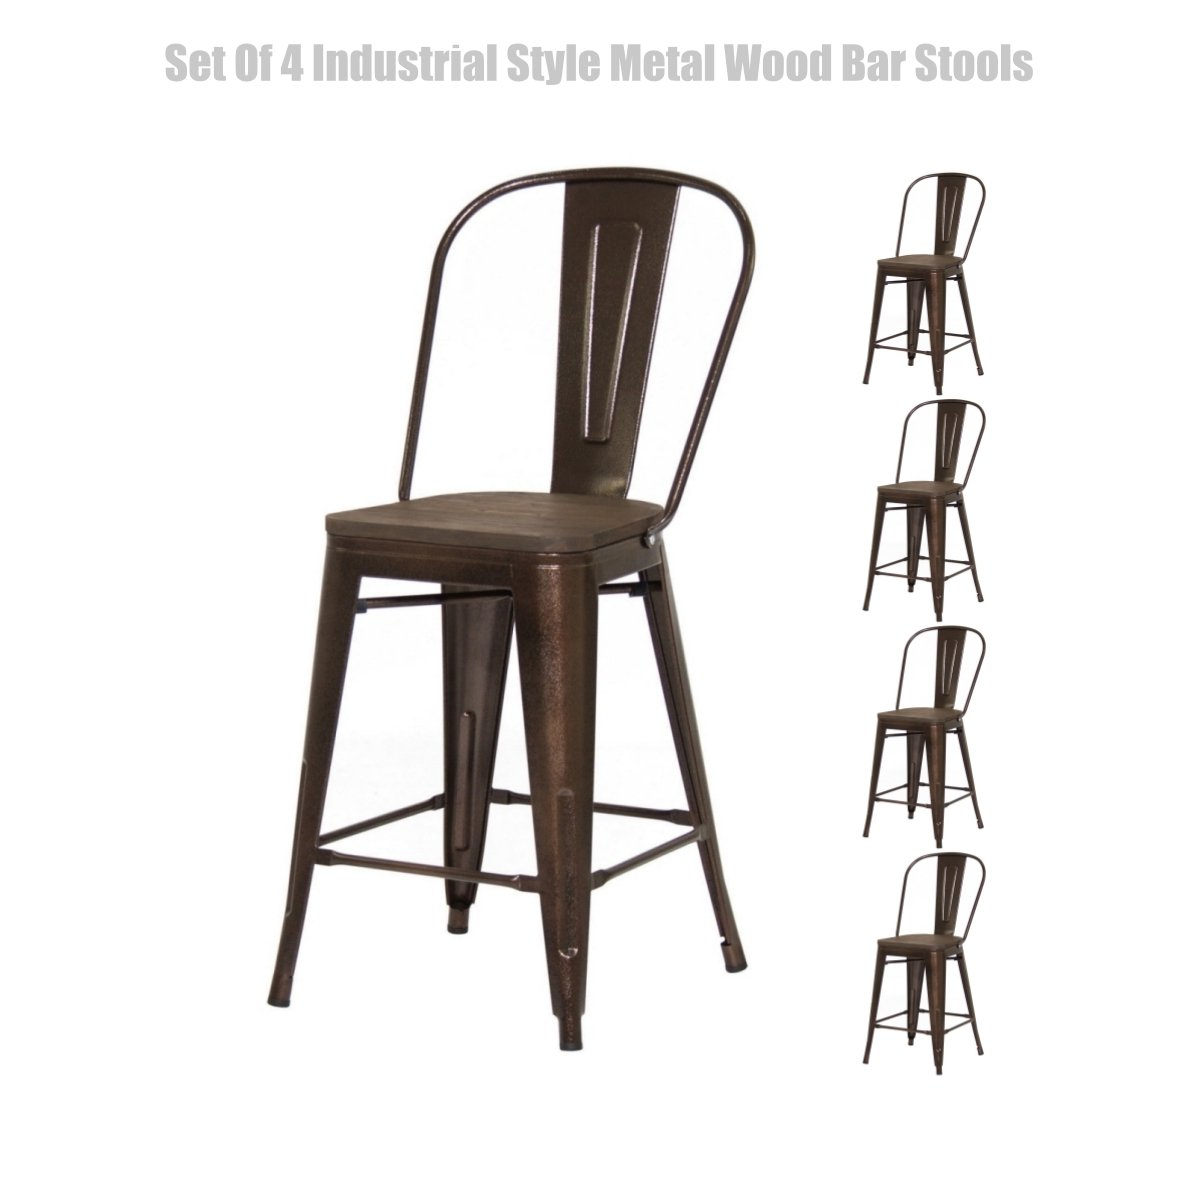 Classic Industrial Style Metal Barstool Solid Steel Construction Comfortable Backrest Scratch Resistant Side Chair Home Office Furniture - Set of 4 Brown 24''H #1447a